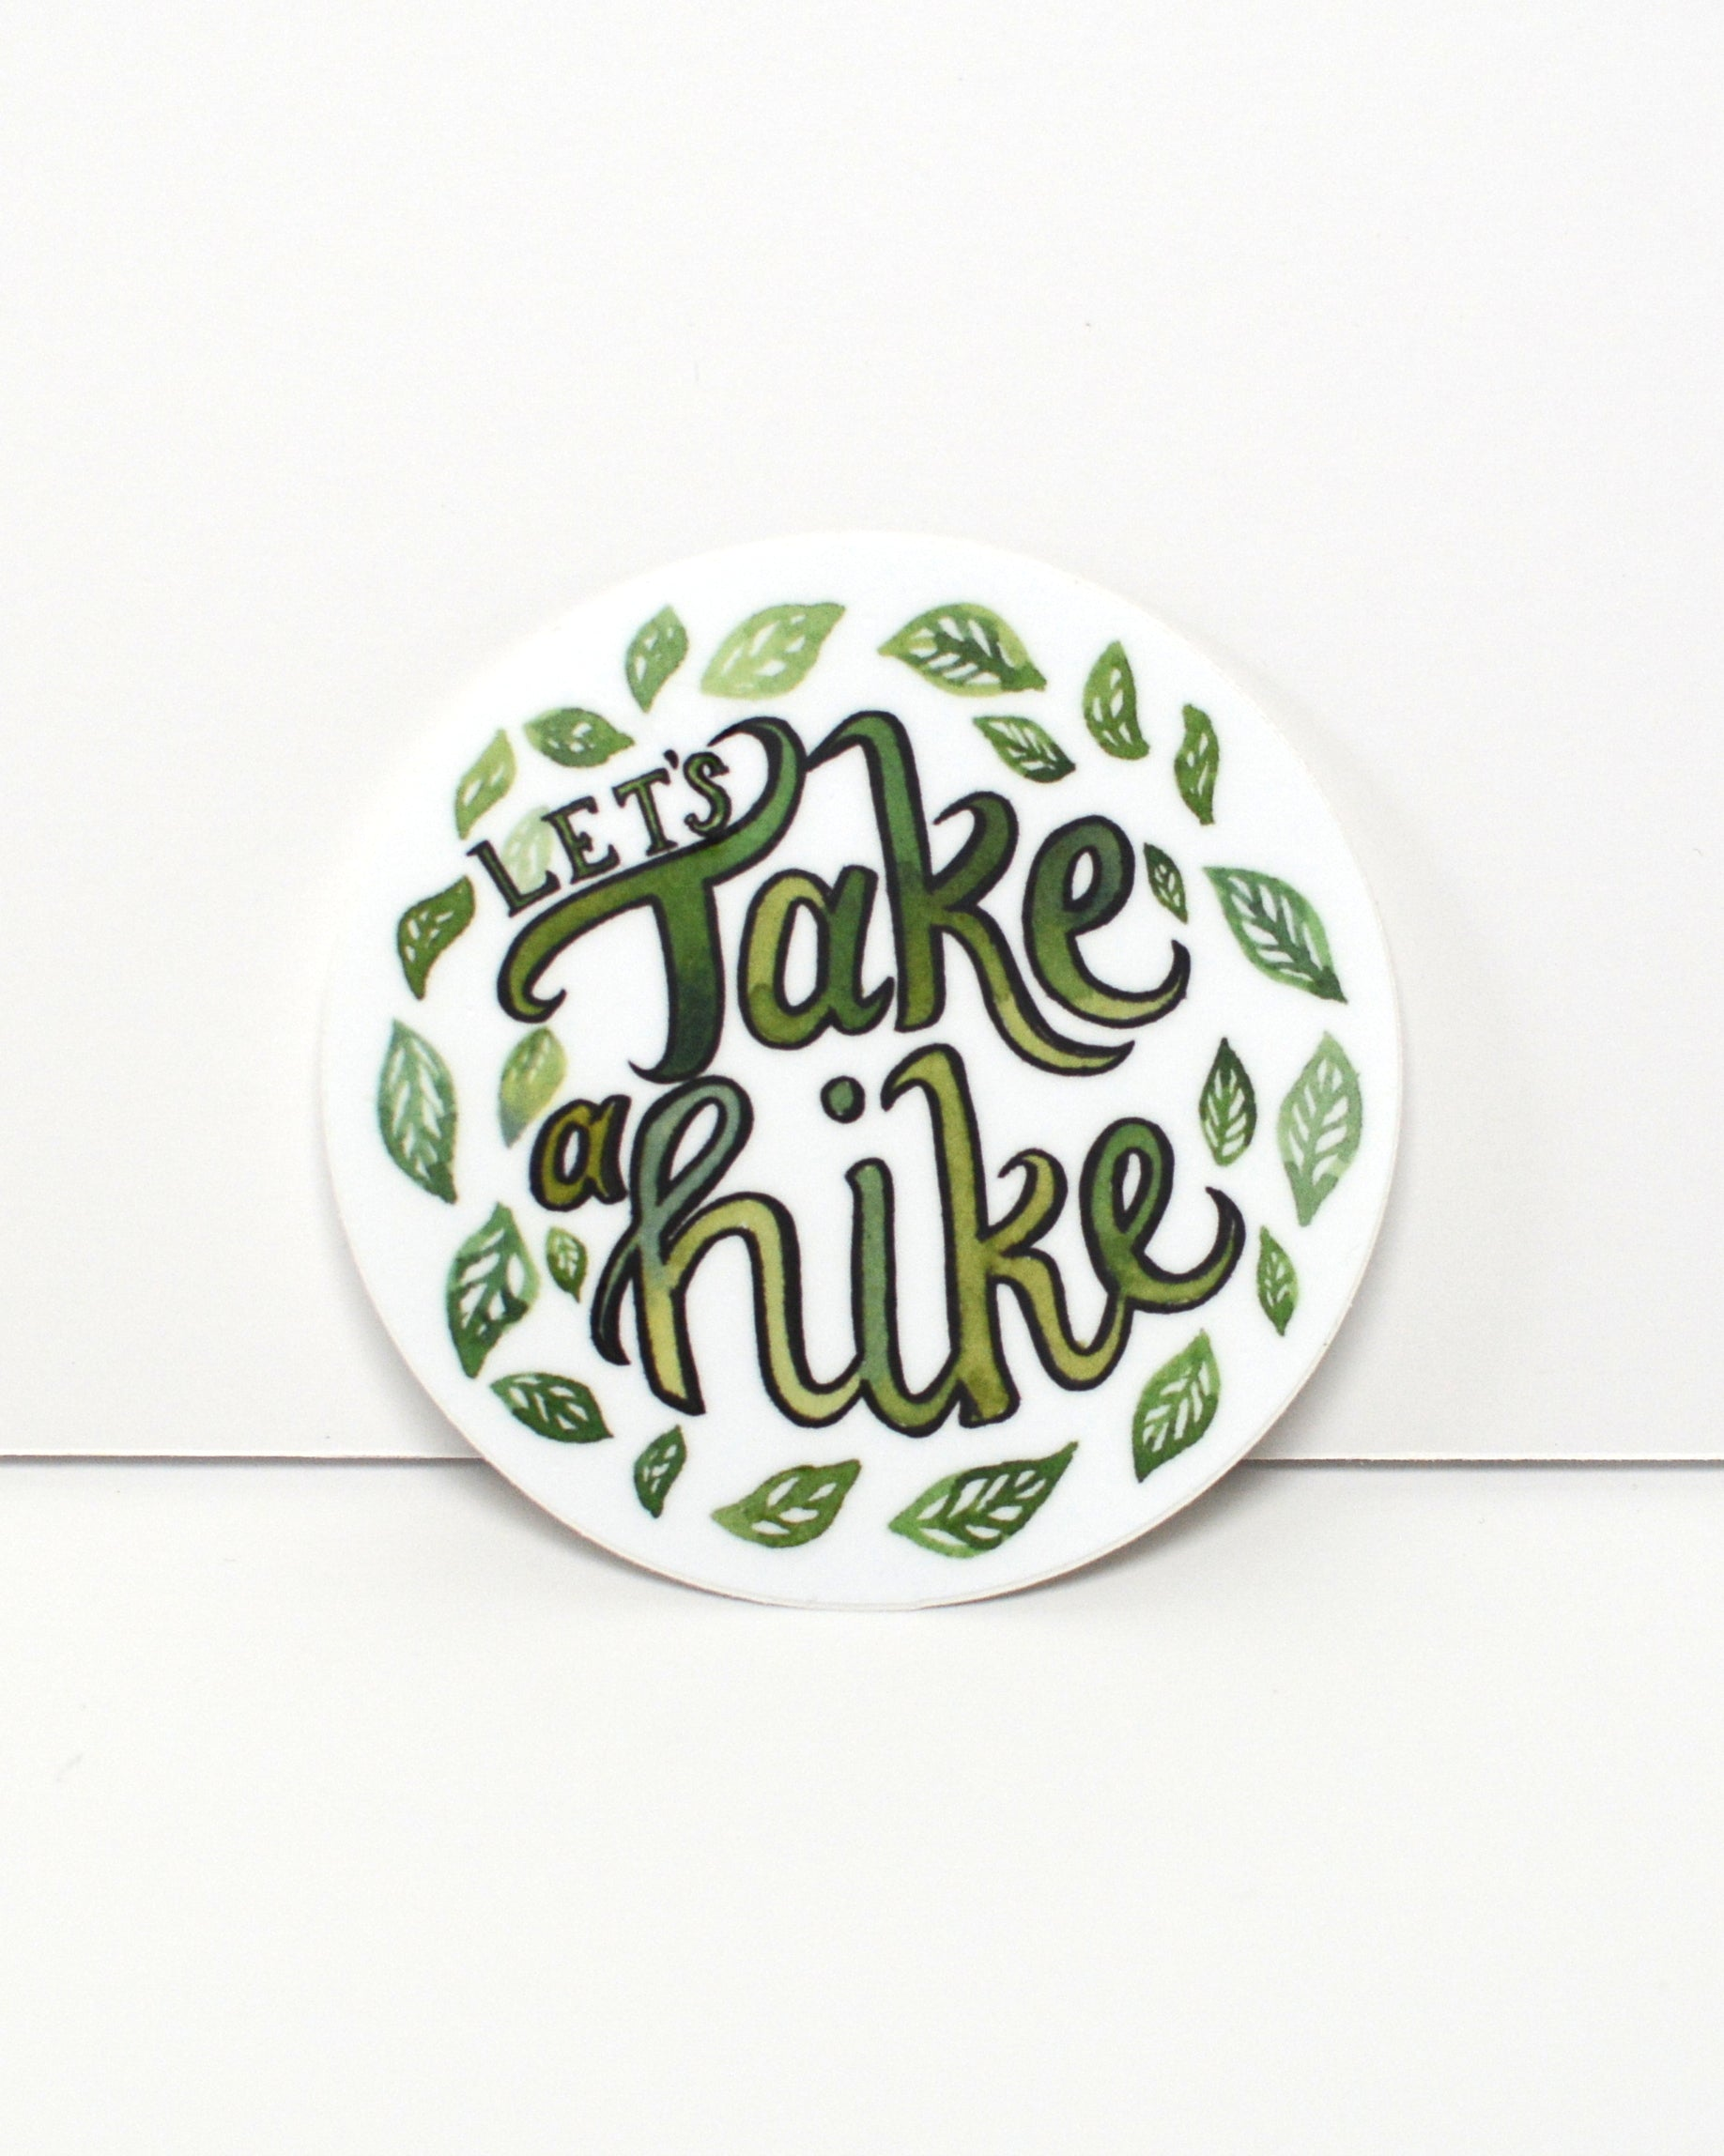 Let's Take a Hike - vinyl sticker - Kim Everhard Art